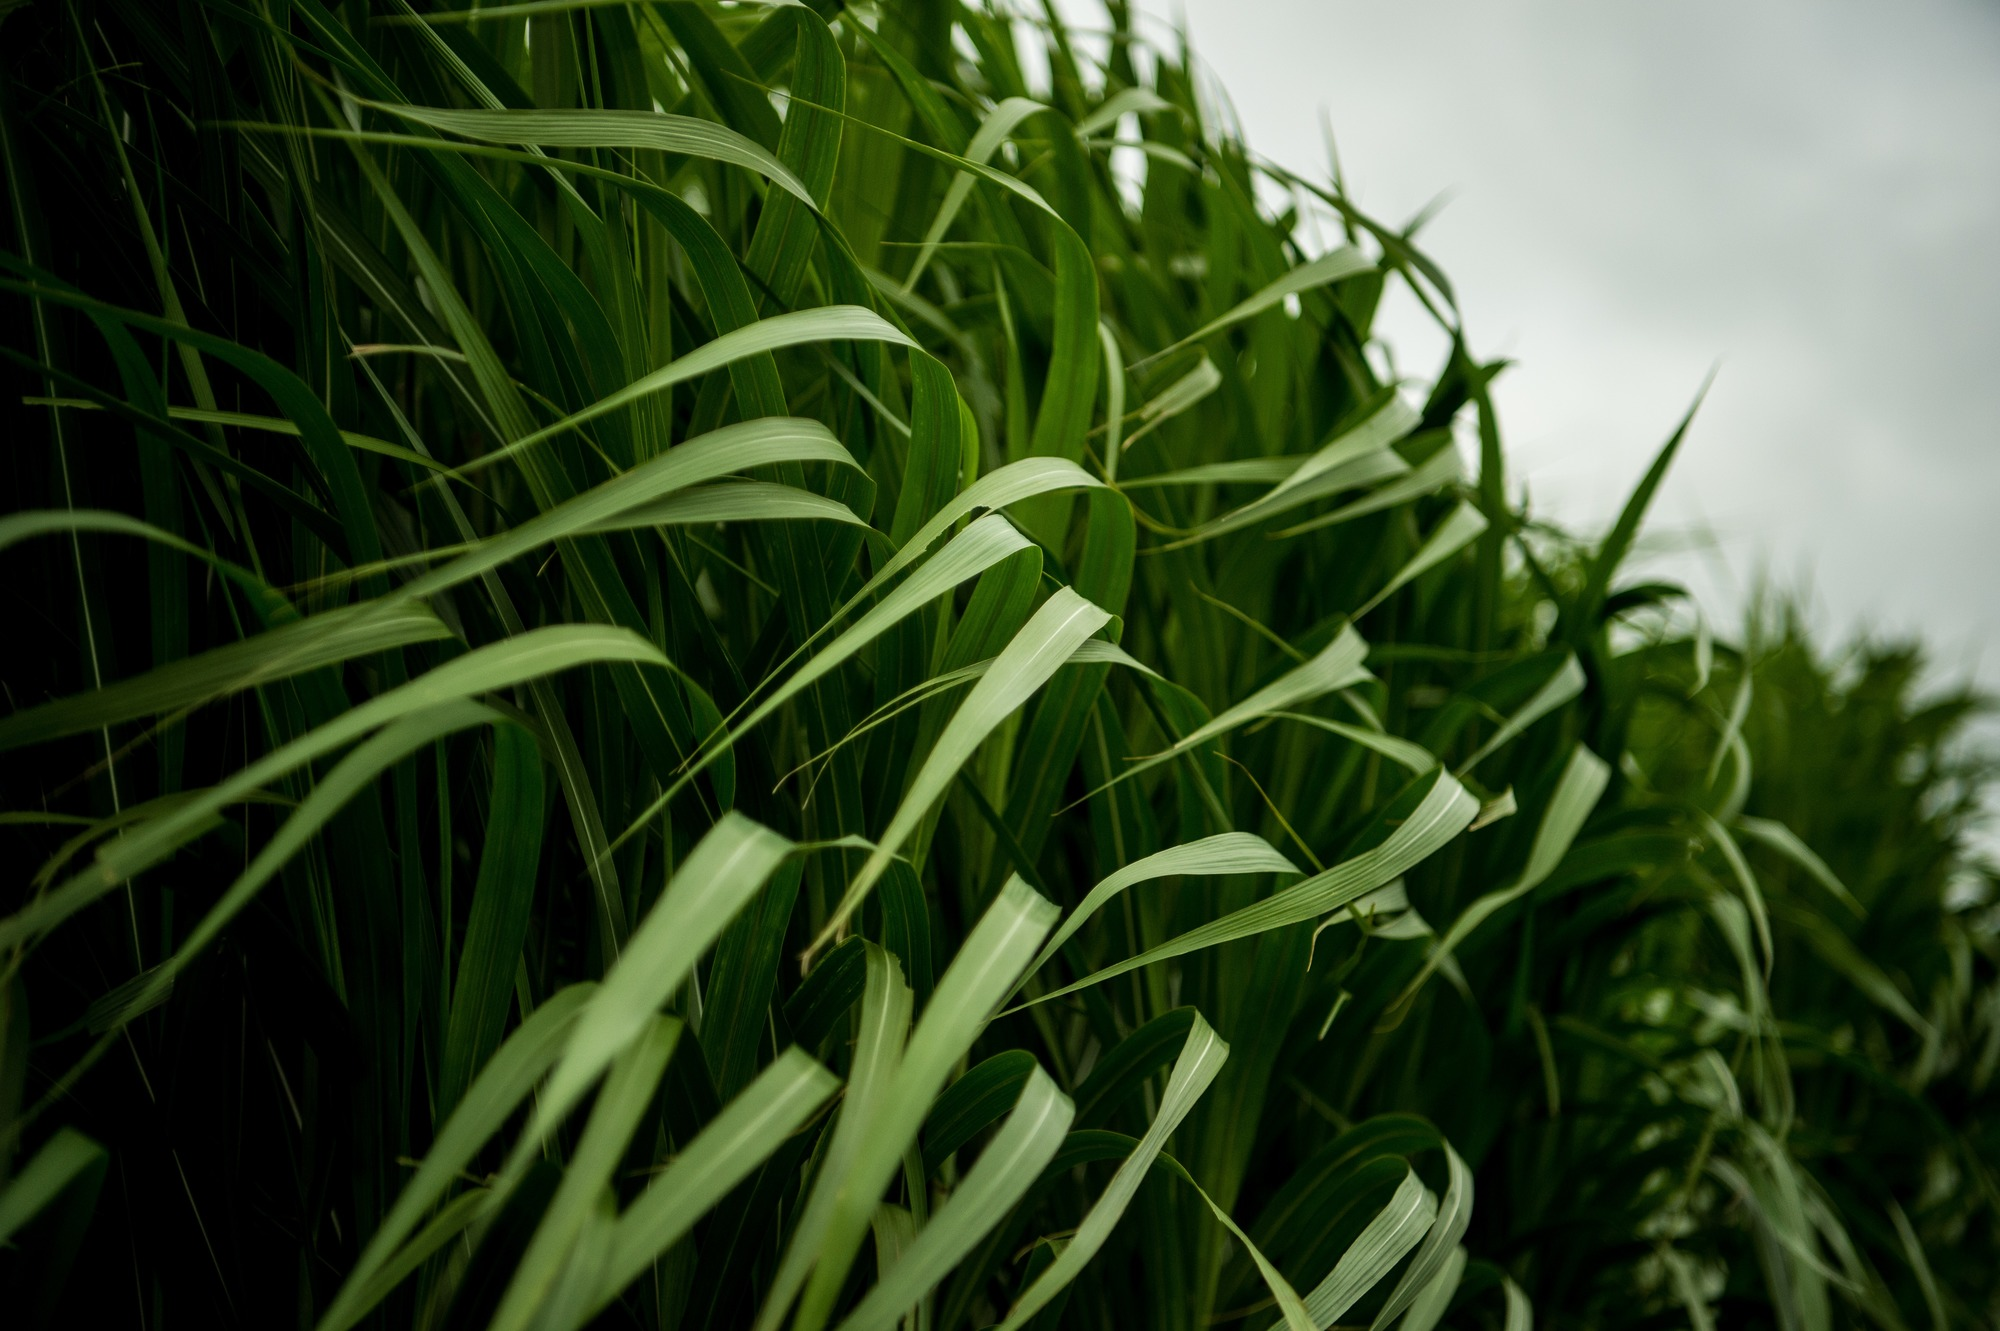 beto_miscanthus, used as a biofuel and carbon capture system